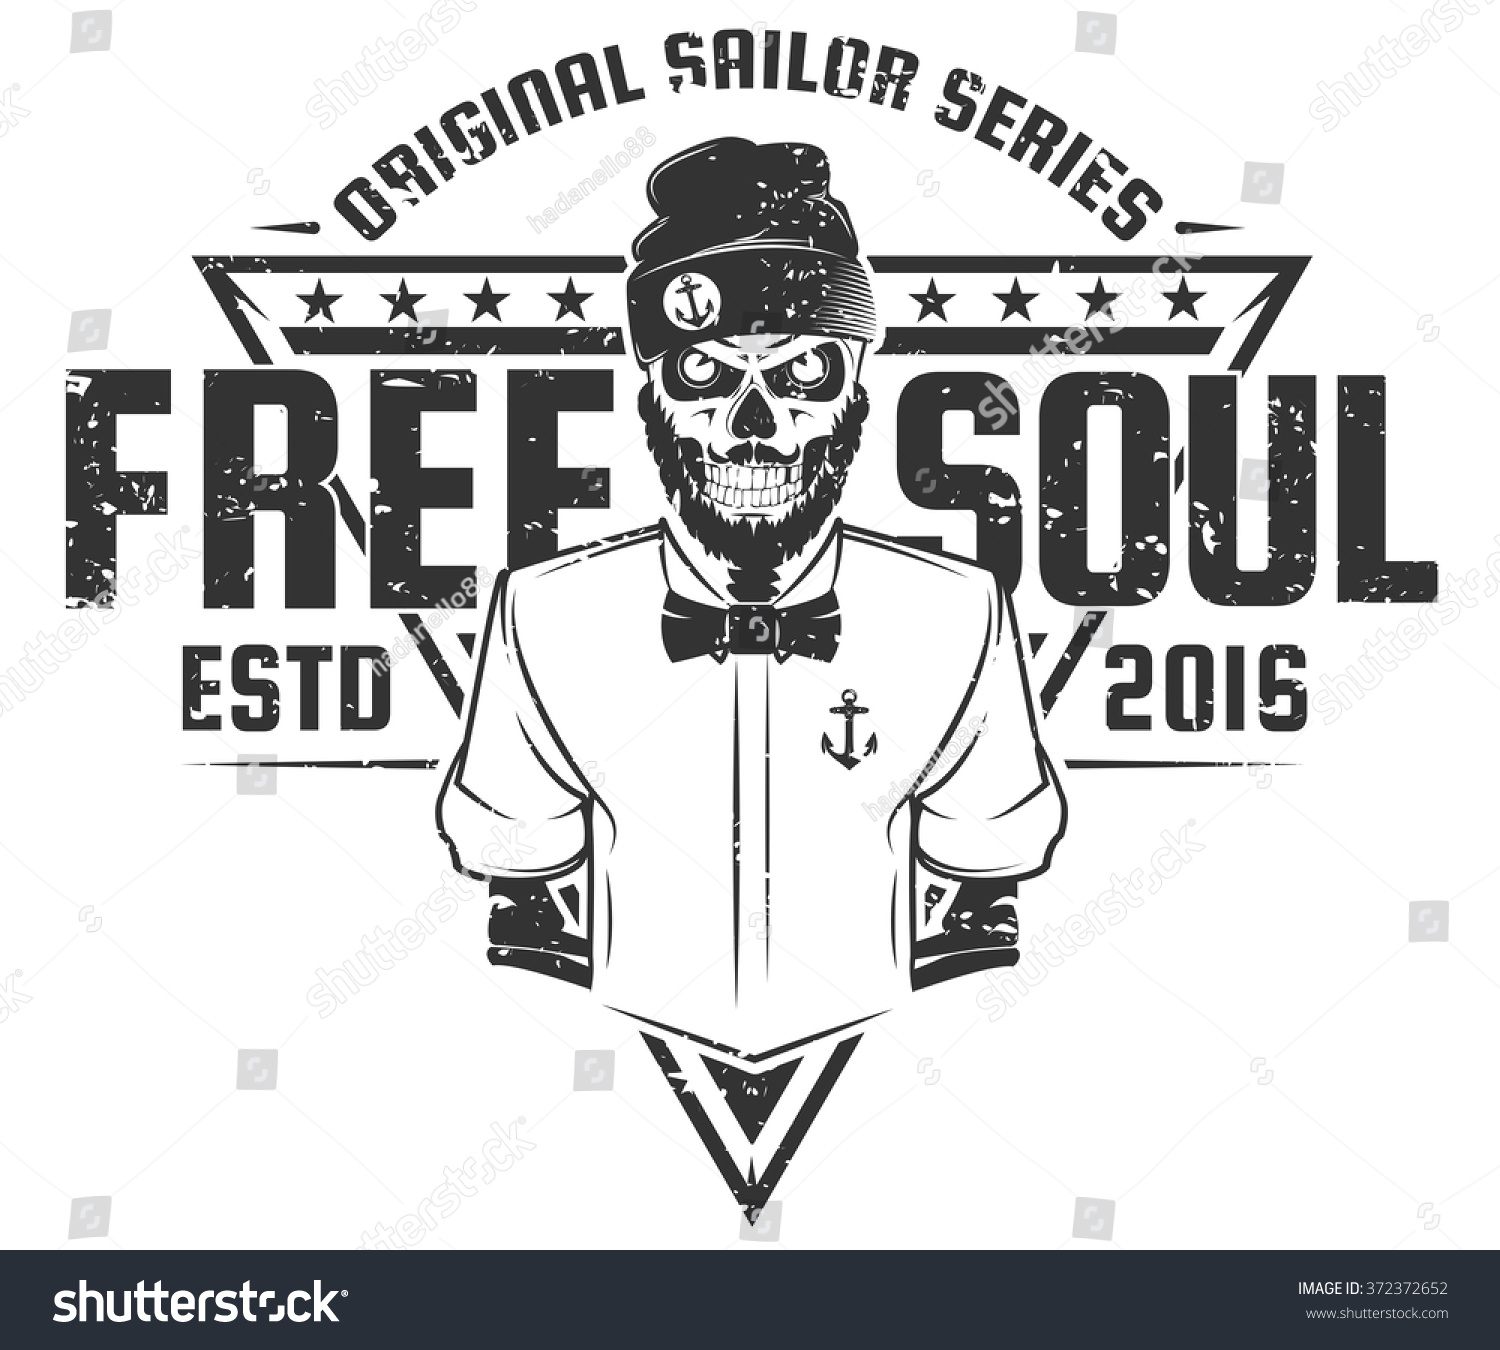 Design t shirt free - Free Soul Sailor Style Design Of Print For T Shirts